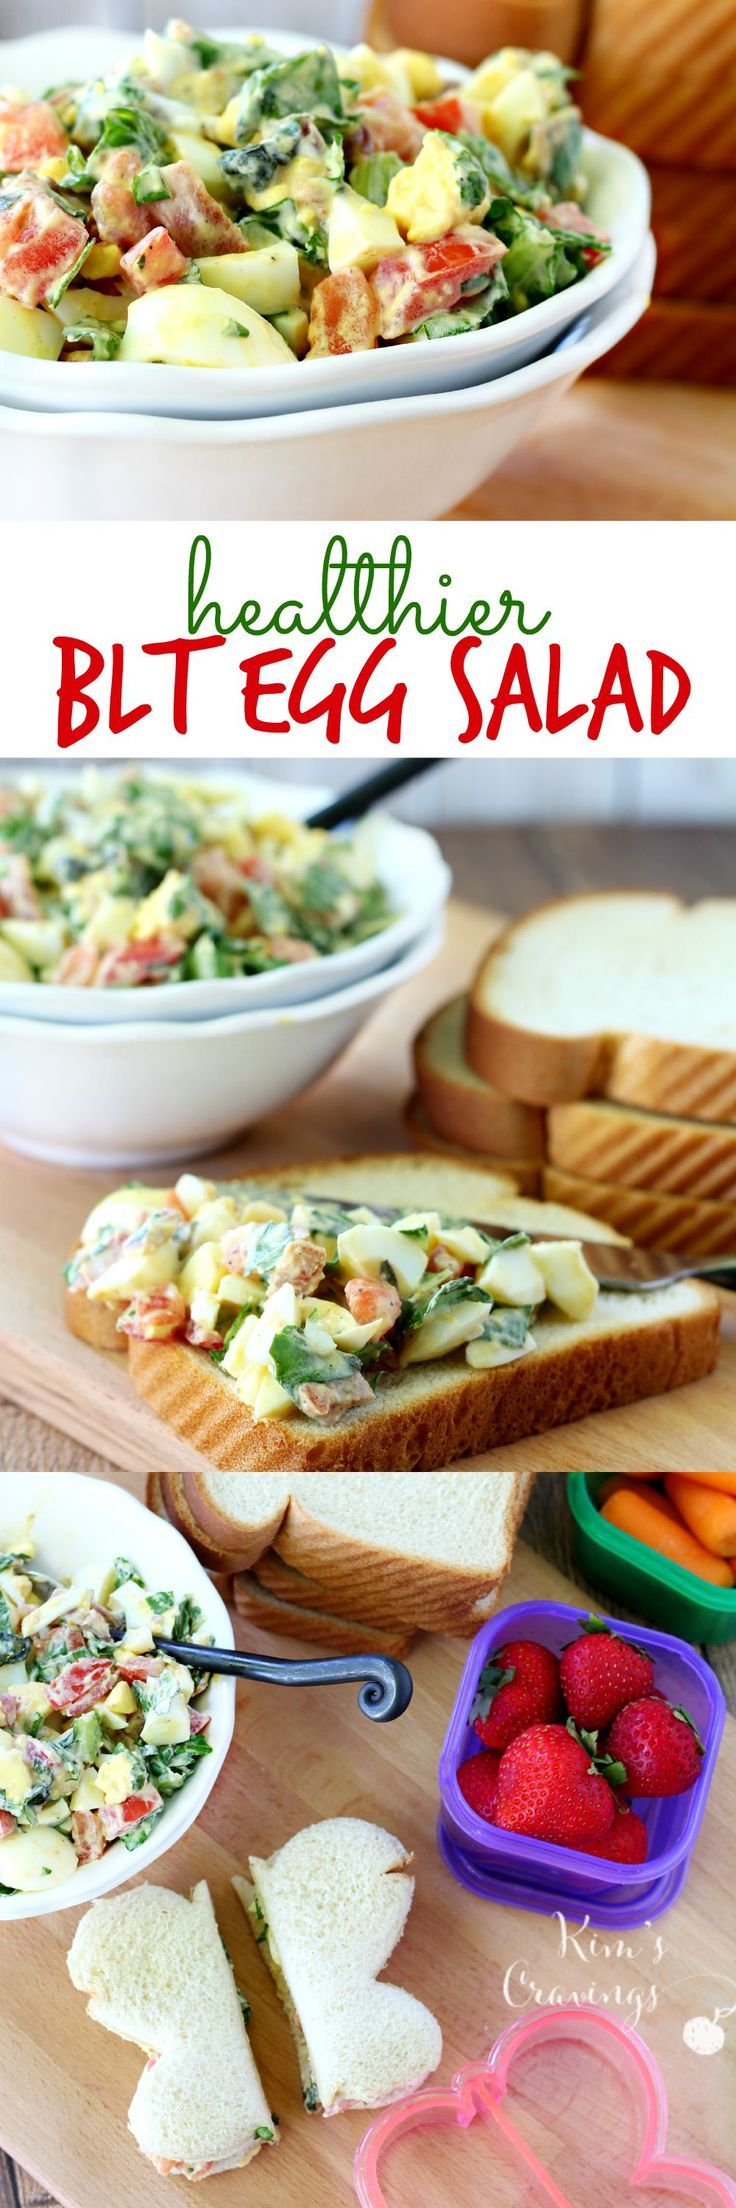 All The Flavor Of A Blt In A Healthy Egg Salad Packed With Protein And